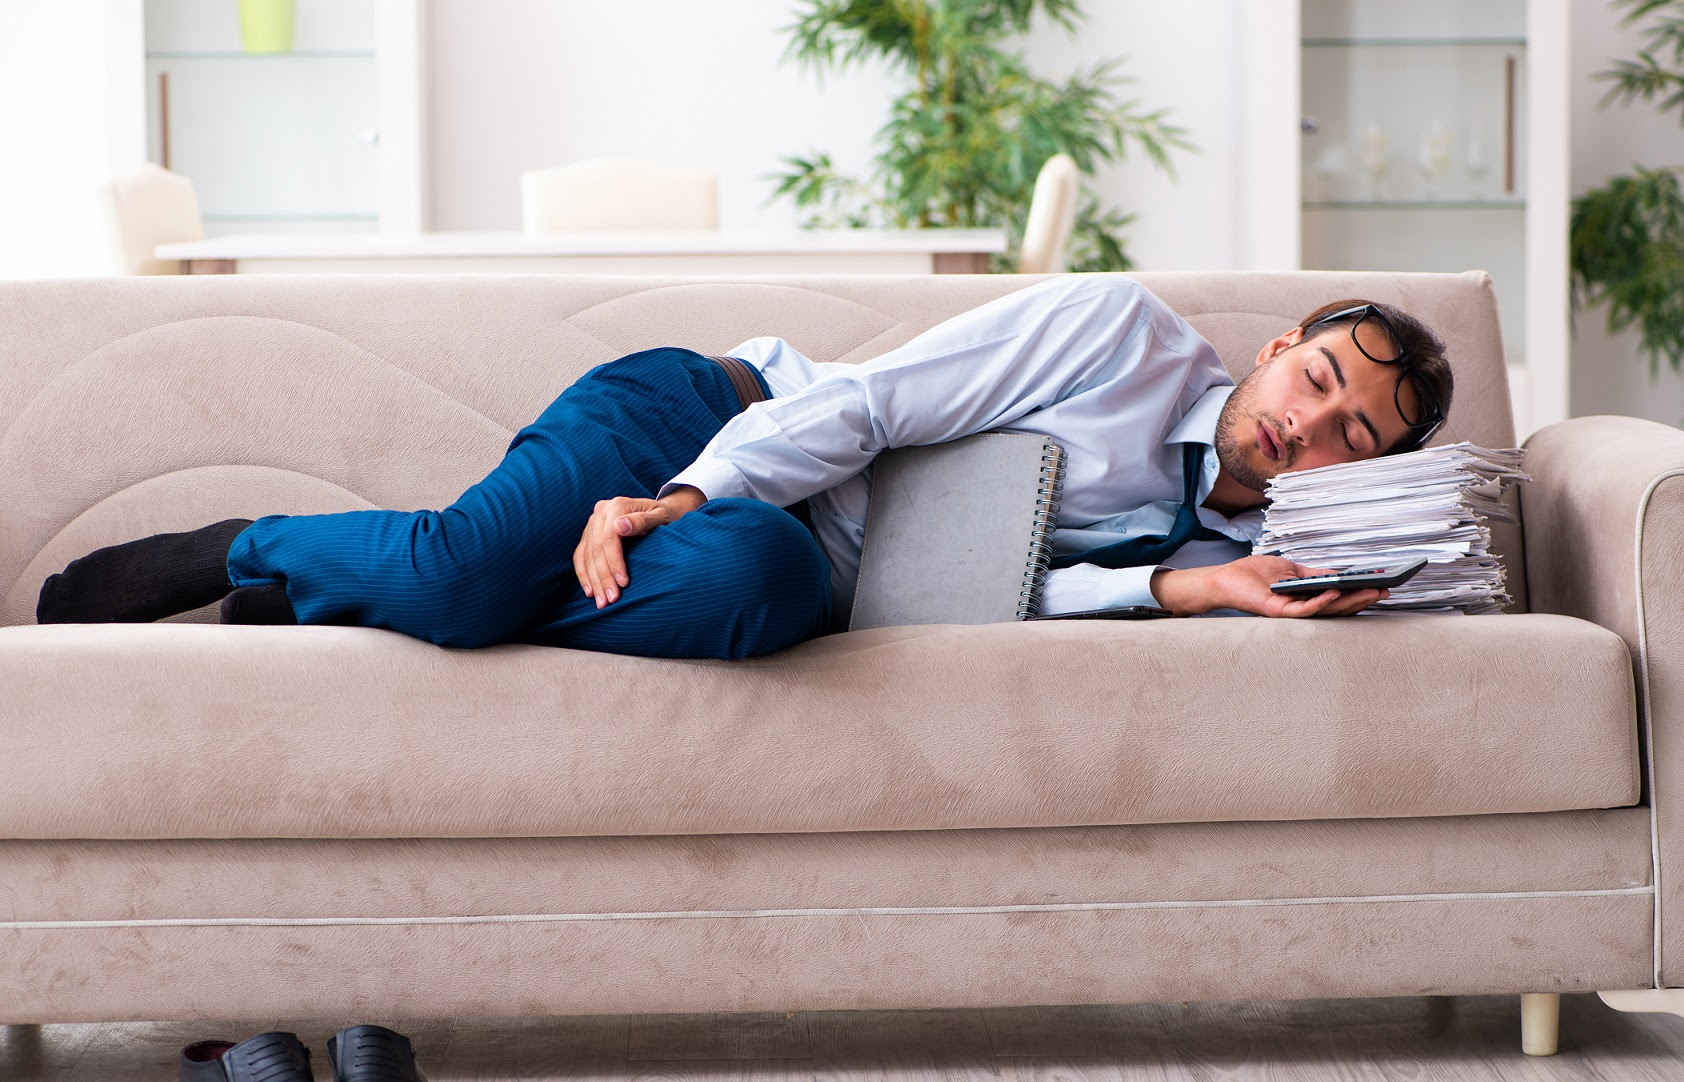 How to Sleep Well While Working From Home?